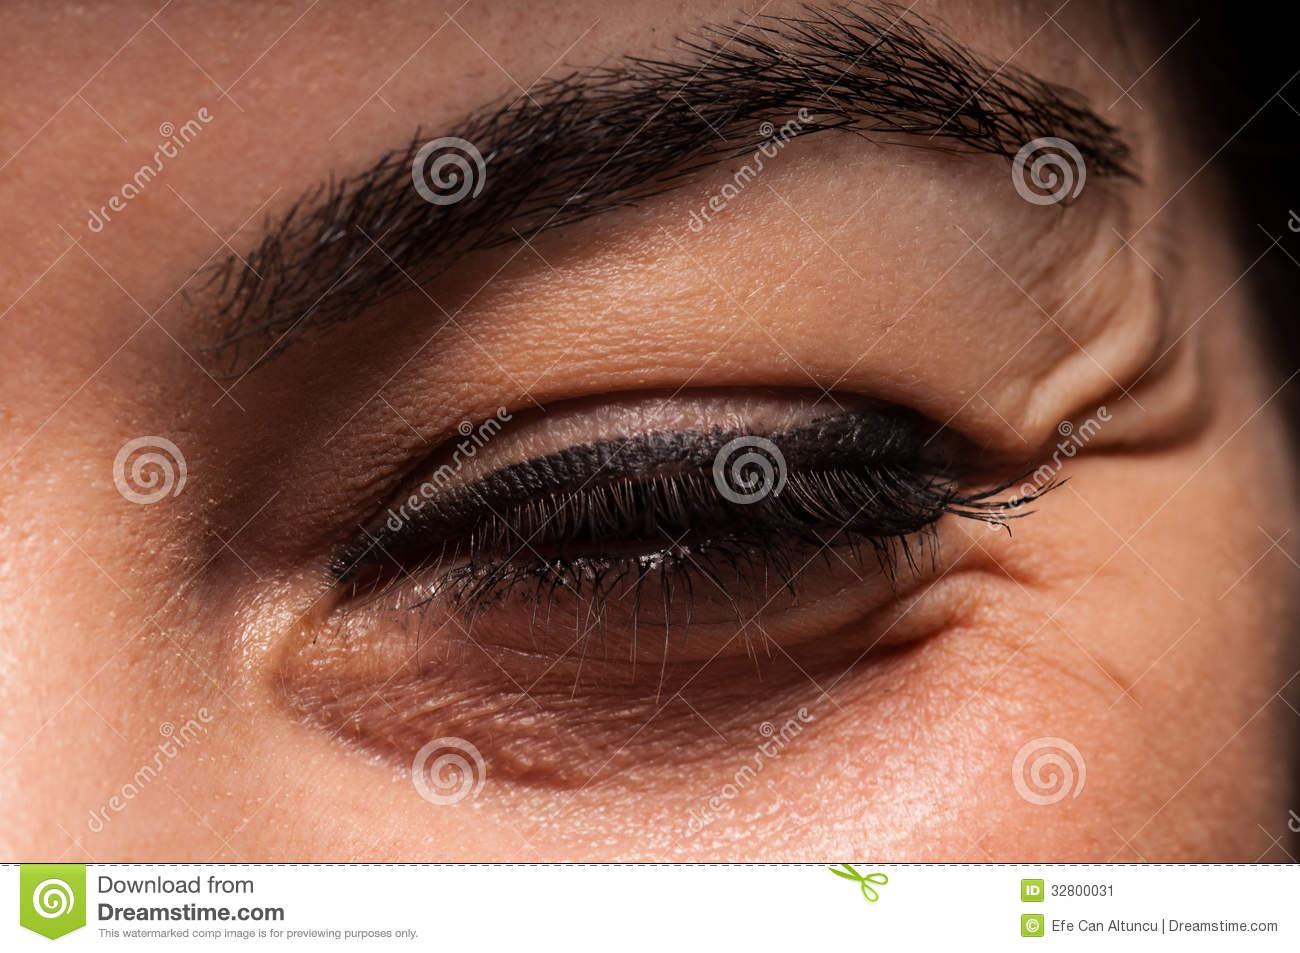 how to stop wrinkles under eyes when smiling